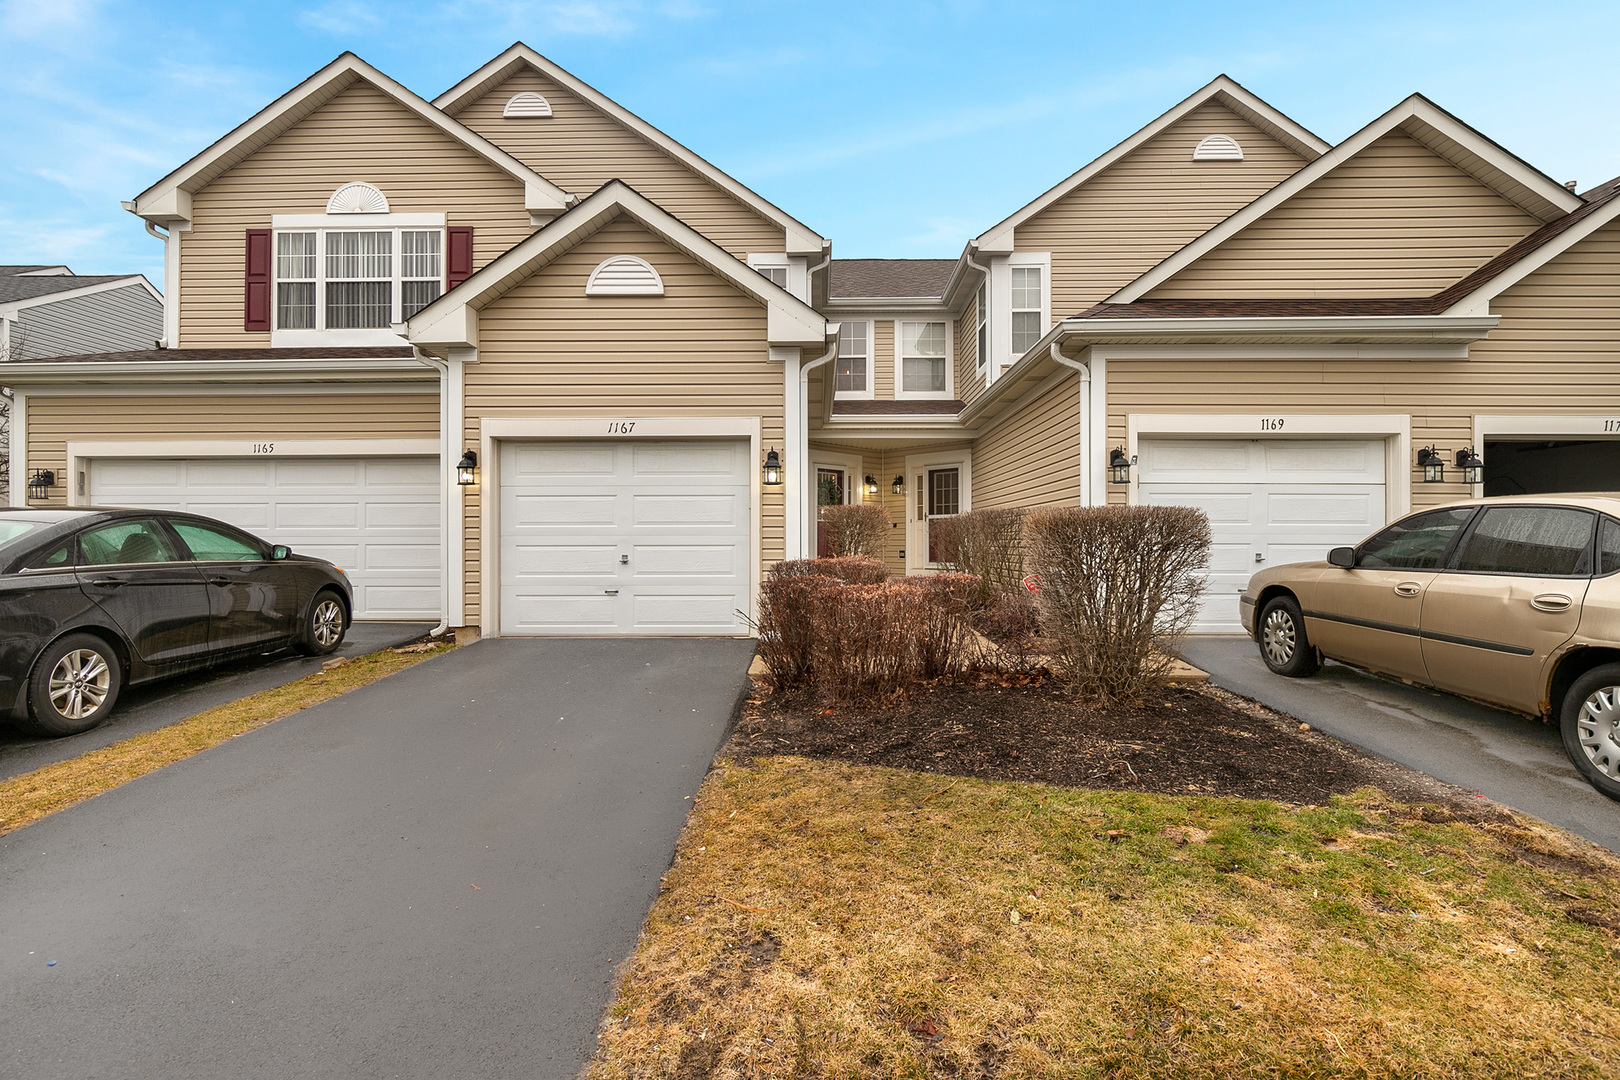 Photo for 1167 Heartland Gate, LAKE IN THE HILLS, IL 60156 (MLS # 10316452)